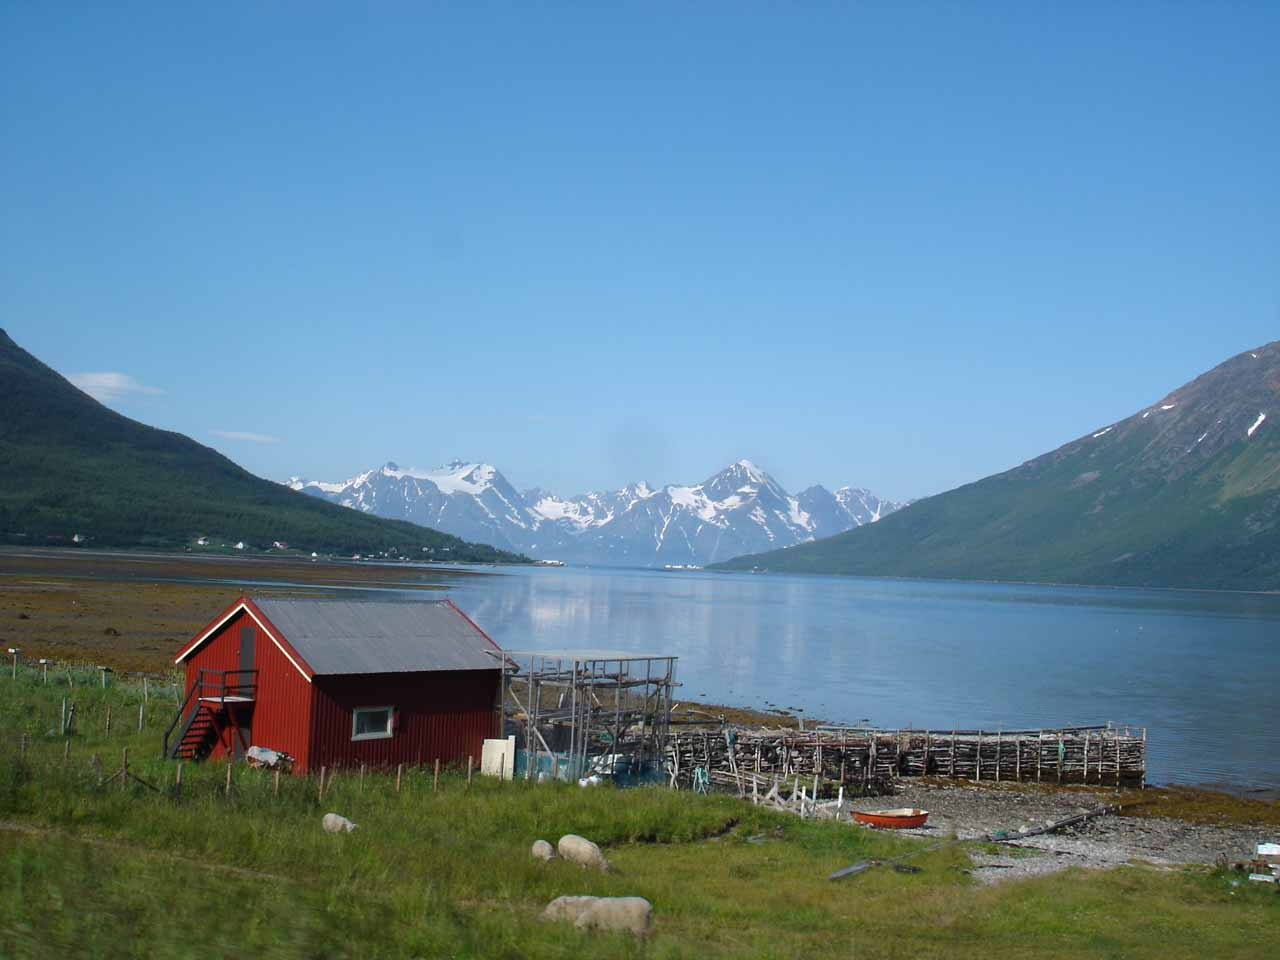 While driving south along the E6 from Storslett towards Kåfjorden, we started to see the Lyngen Alps behind this farm or fishery